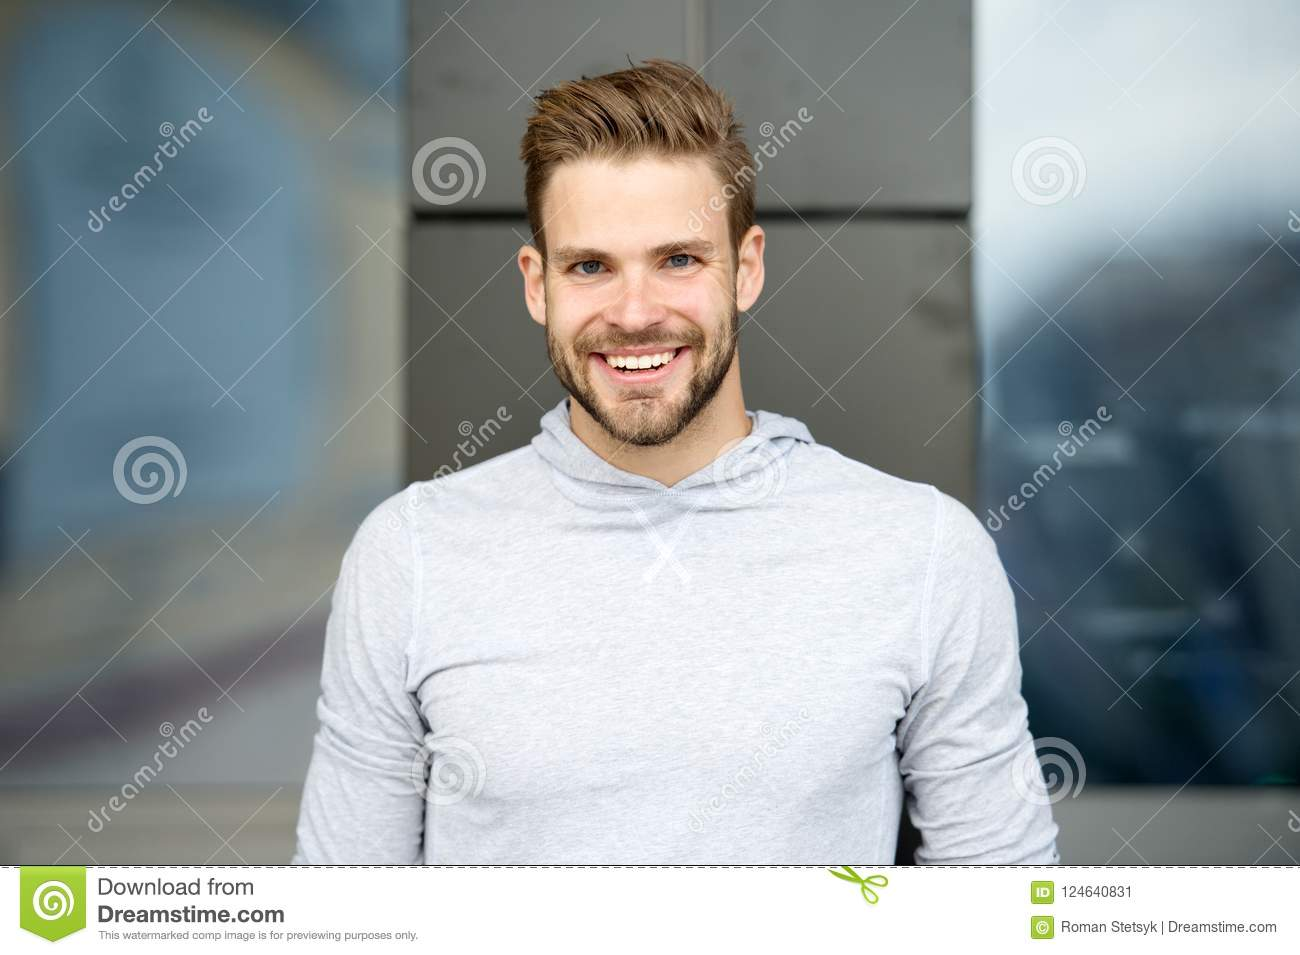 Sincere smile concept. Man with perfect brilliant smile unshaven face urban background. Guy happy emotional expression